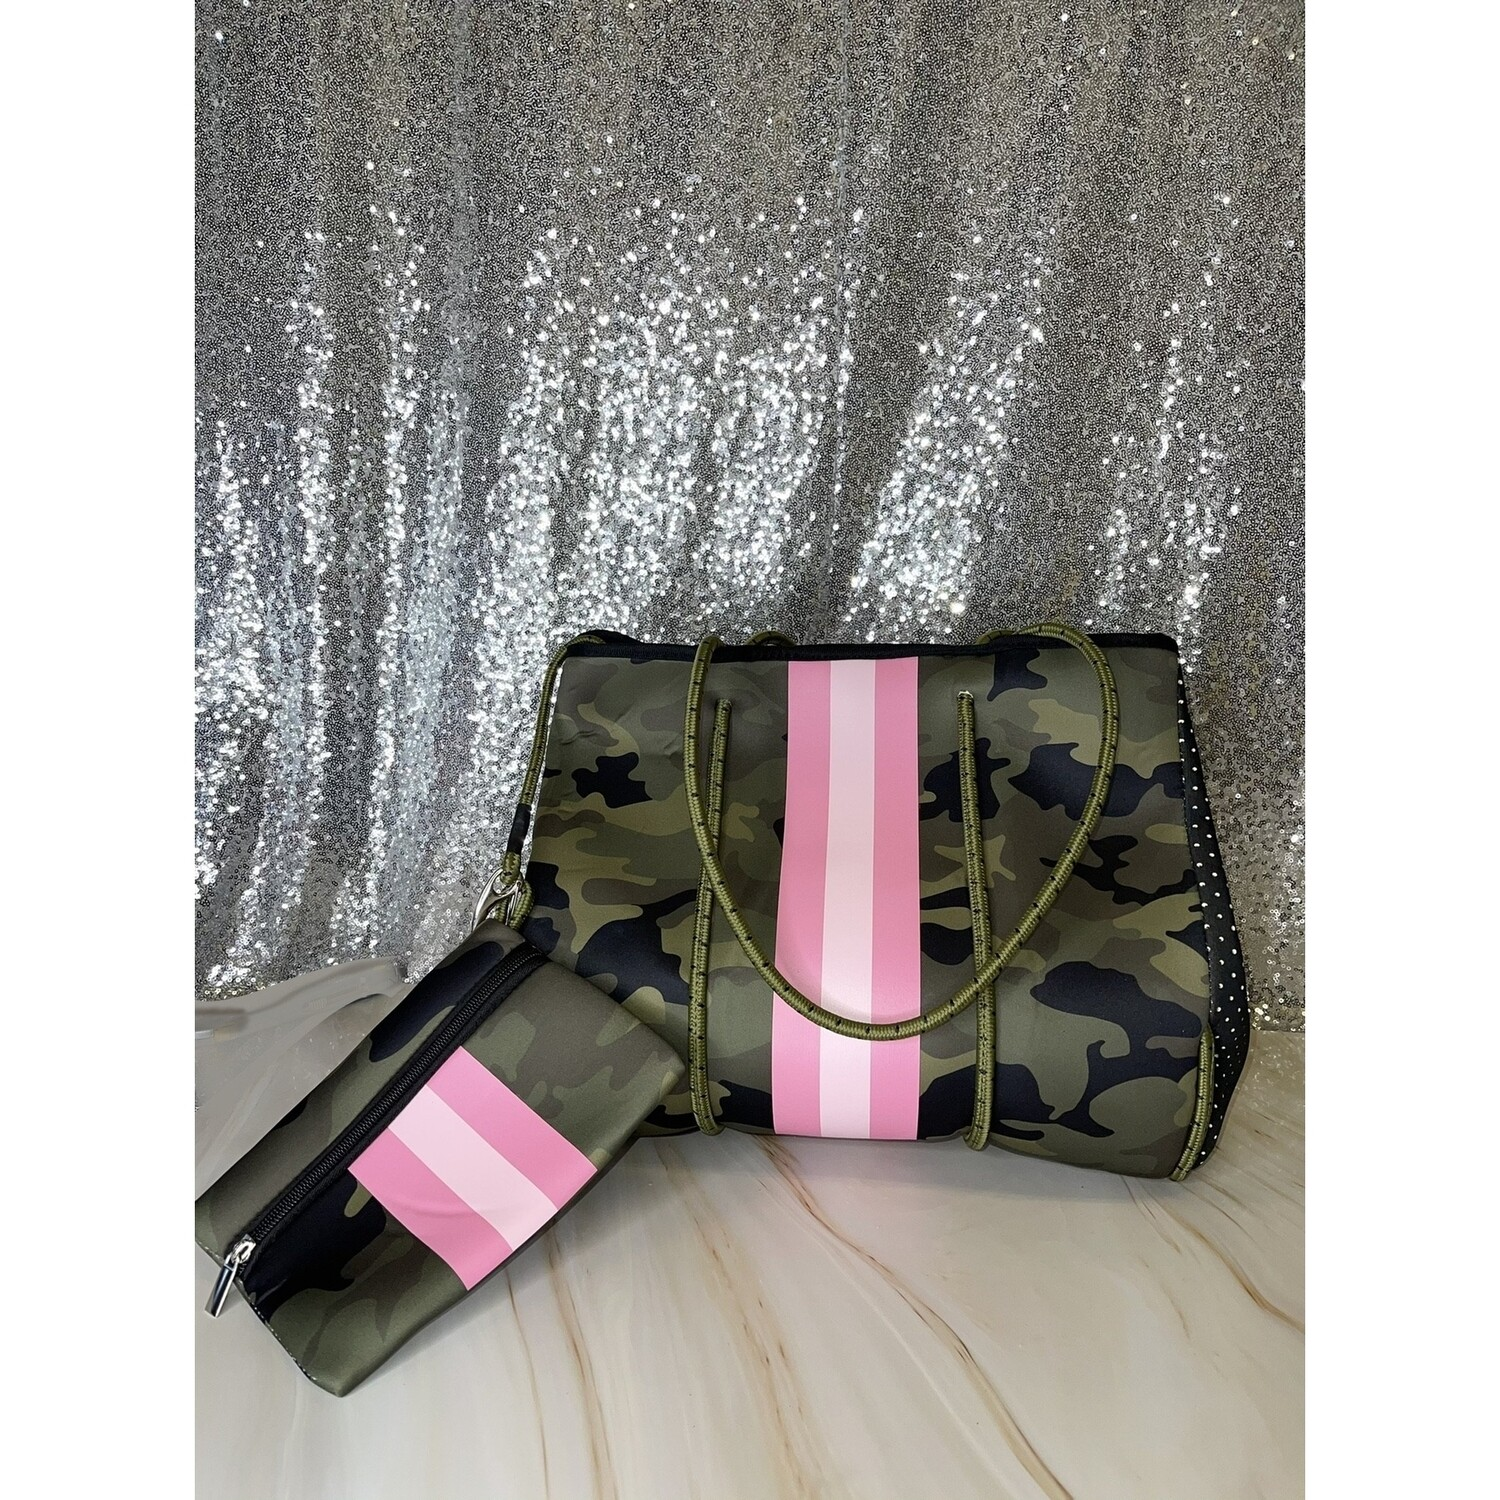 Hattie Neoprene Bag